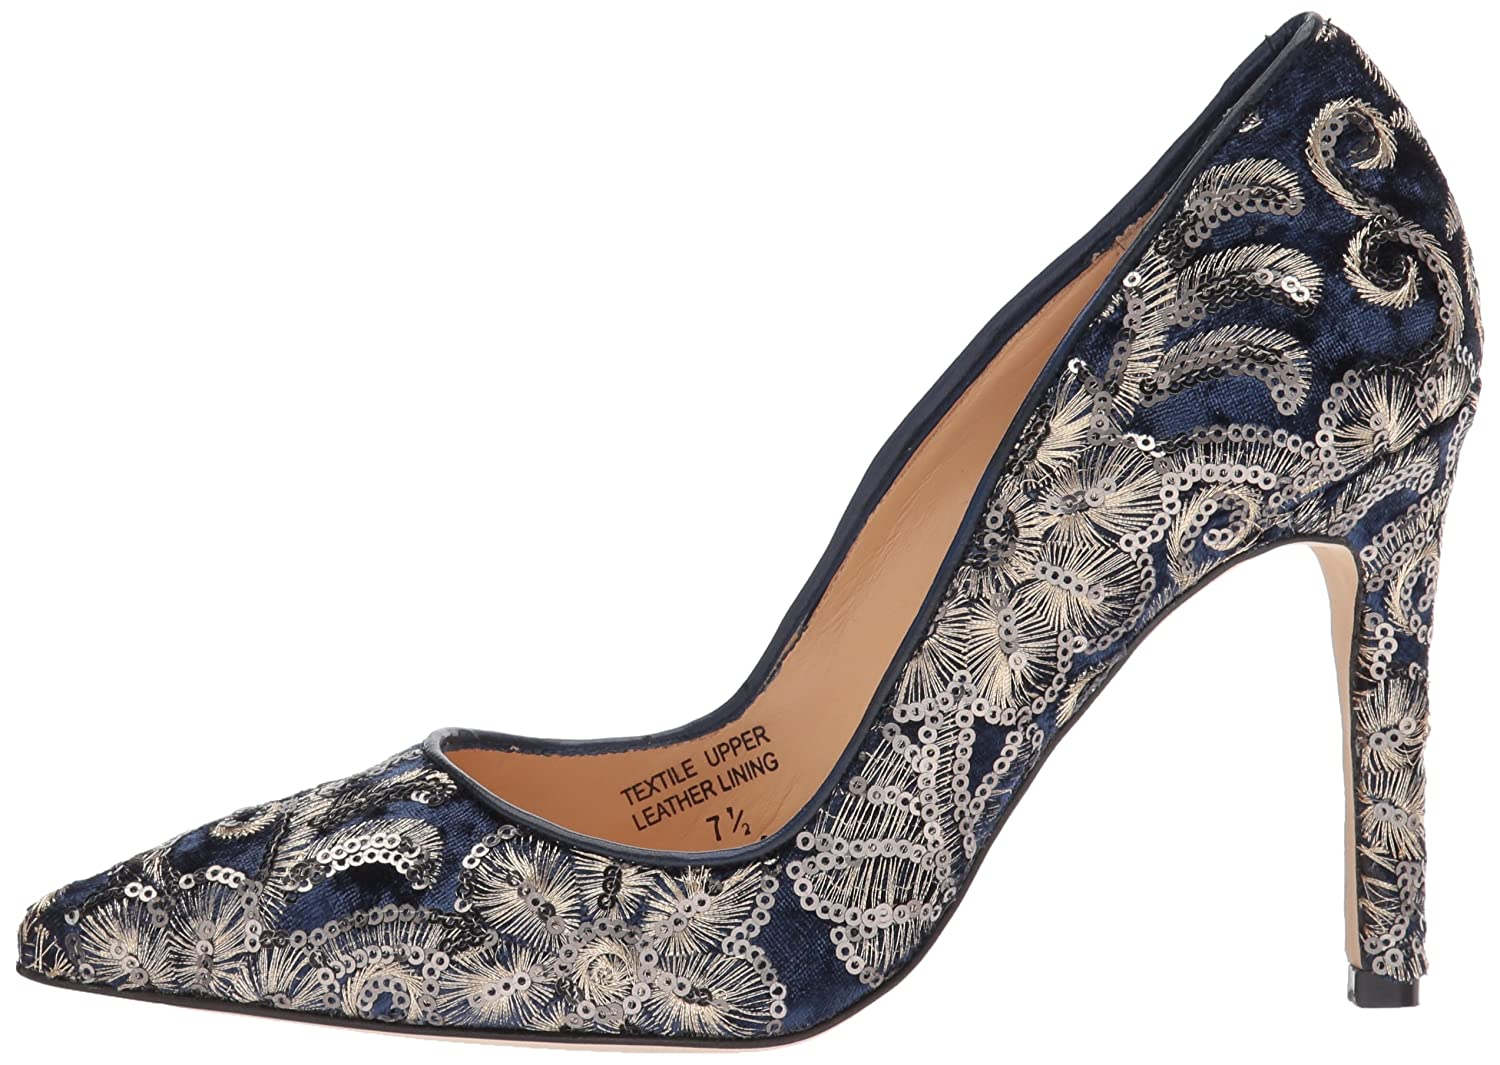 Badgley Mischka Women's Marilou Pump B073BY12WT 8.5 B(M) US|Navy